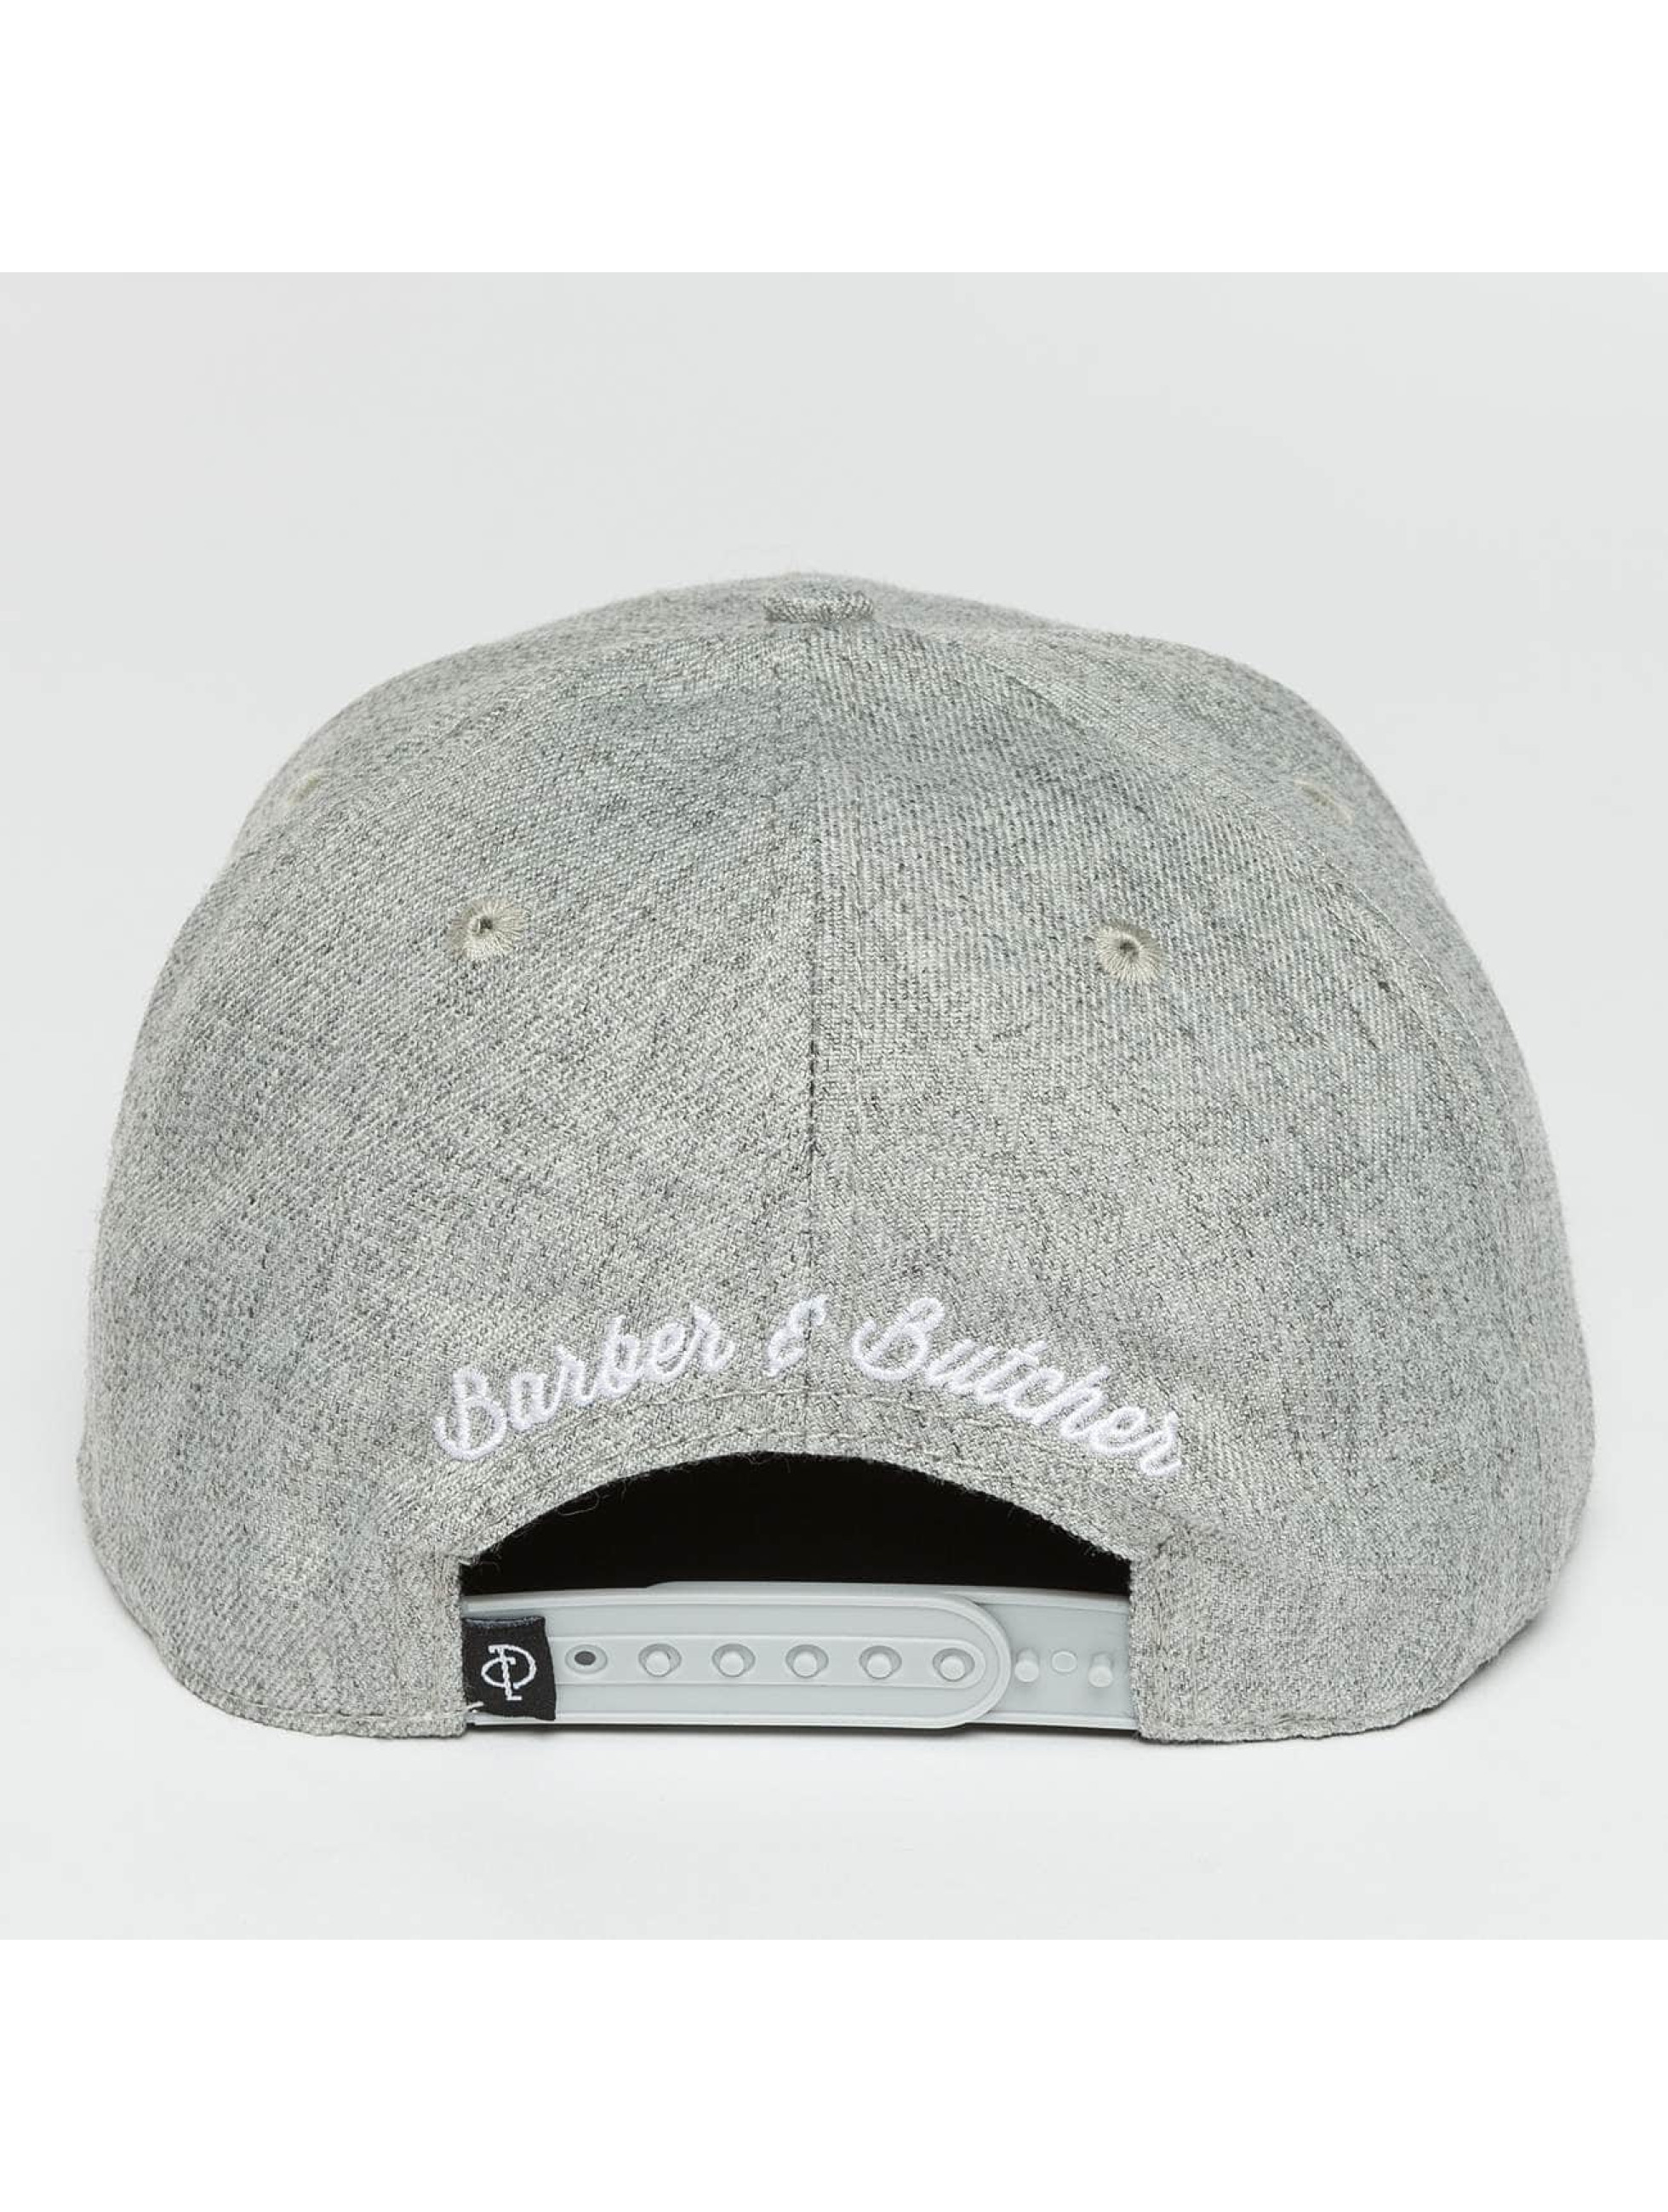 Distorted People Gorra Snapback Barber & Butcher gris